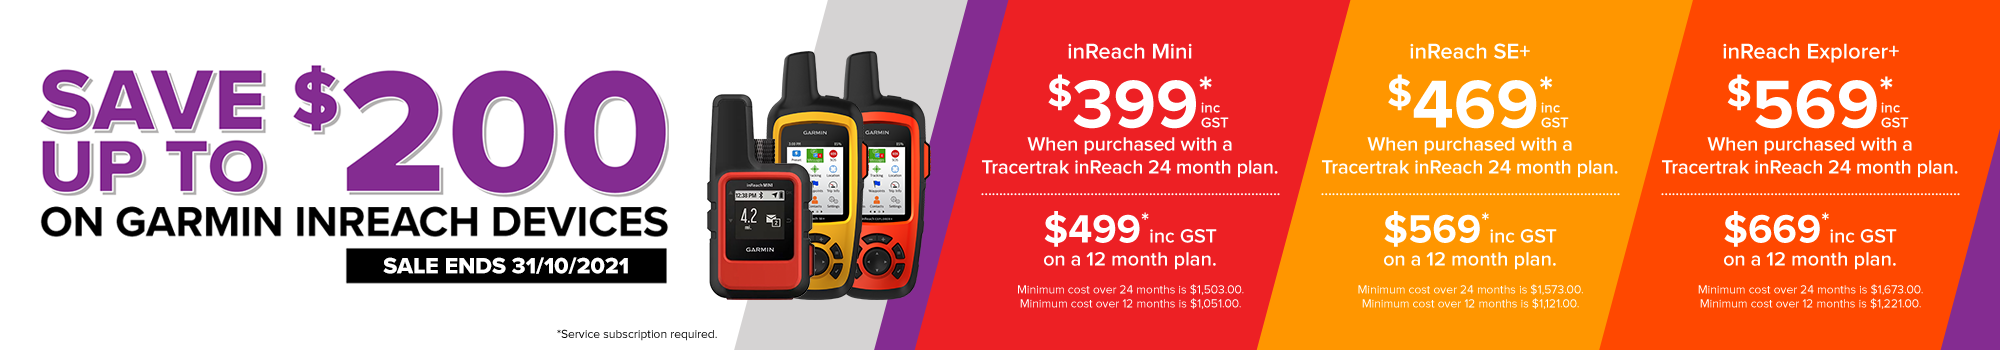 save up to $200 on garmin inreach devices when purchased with a tracertrak plan promo extended october 2021